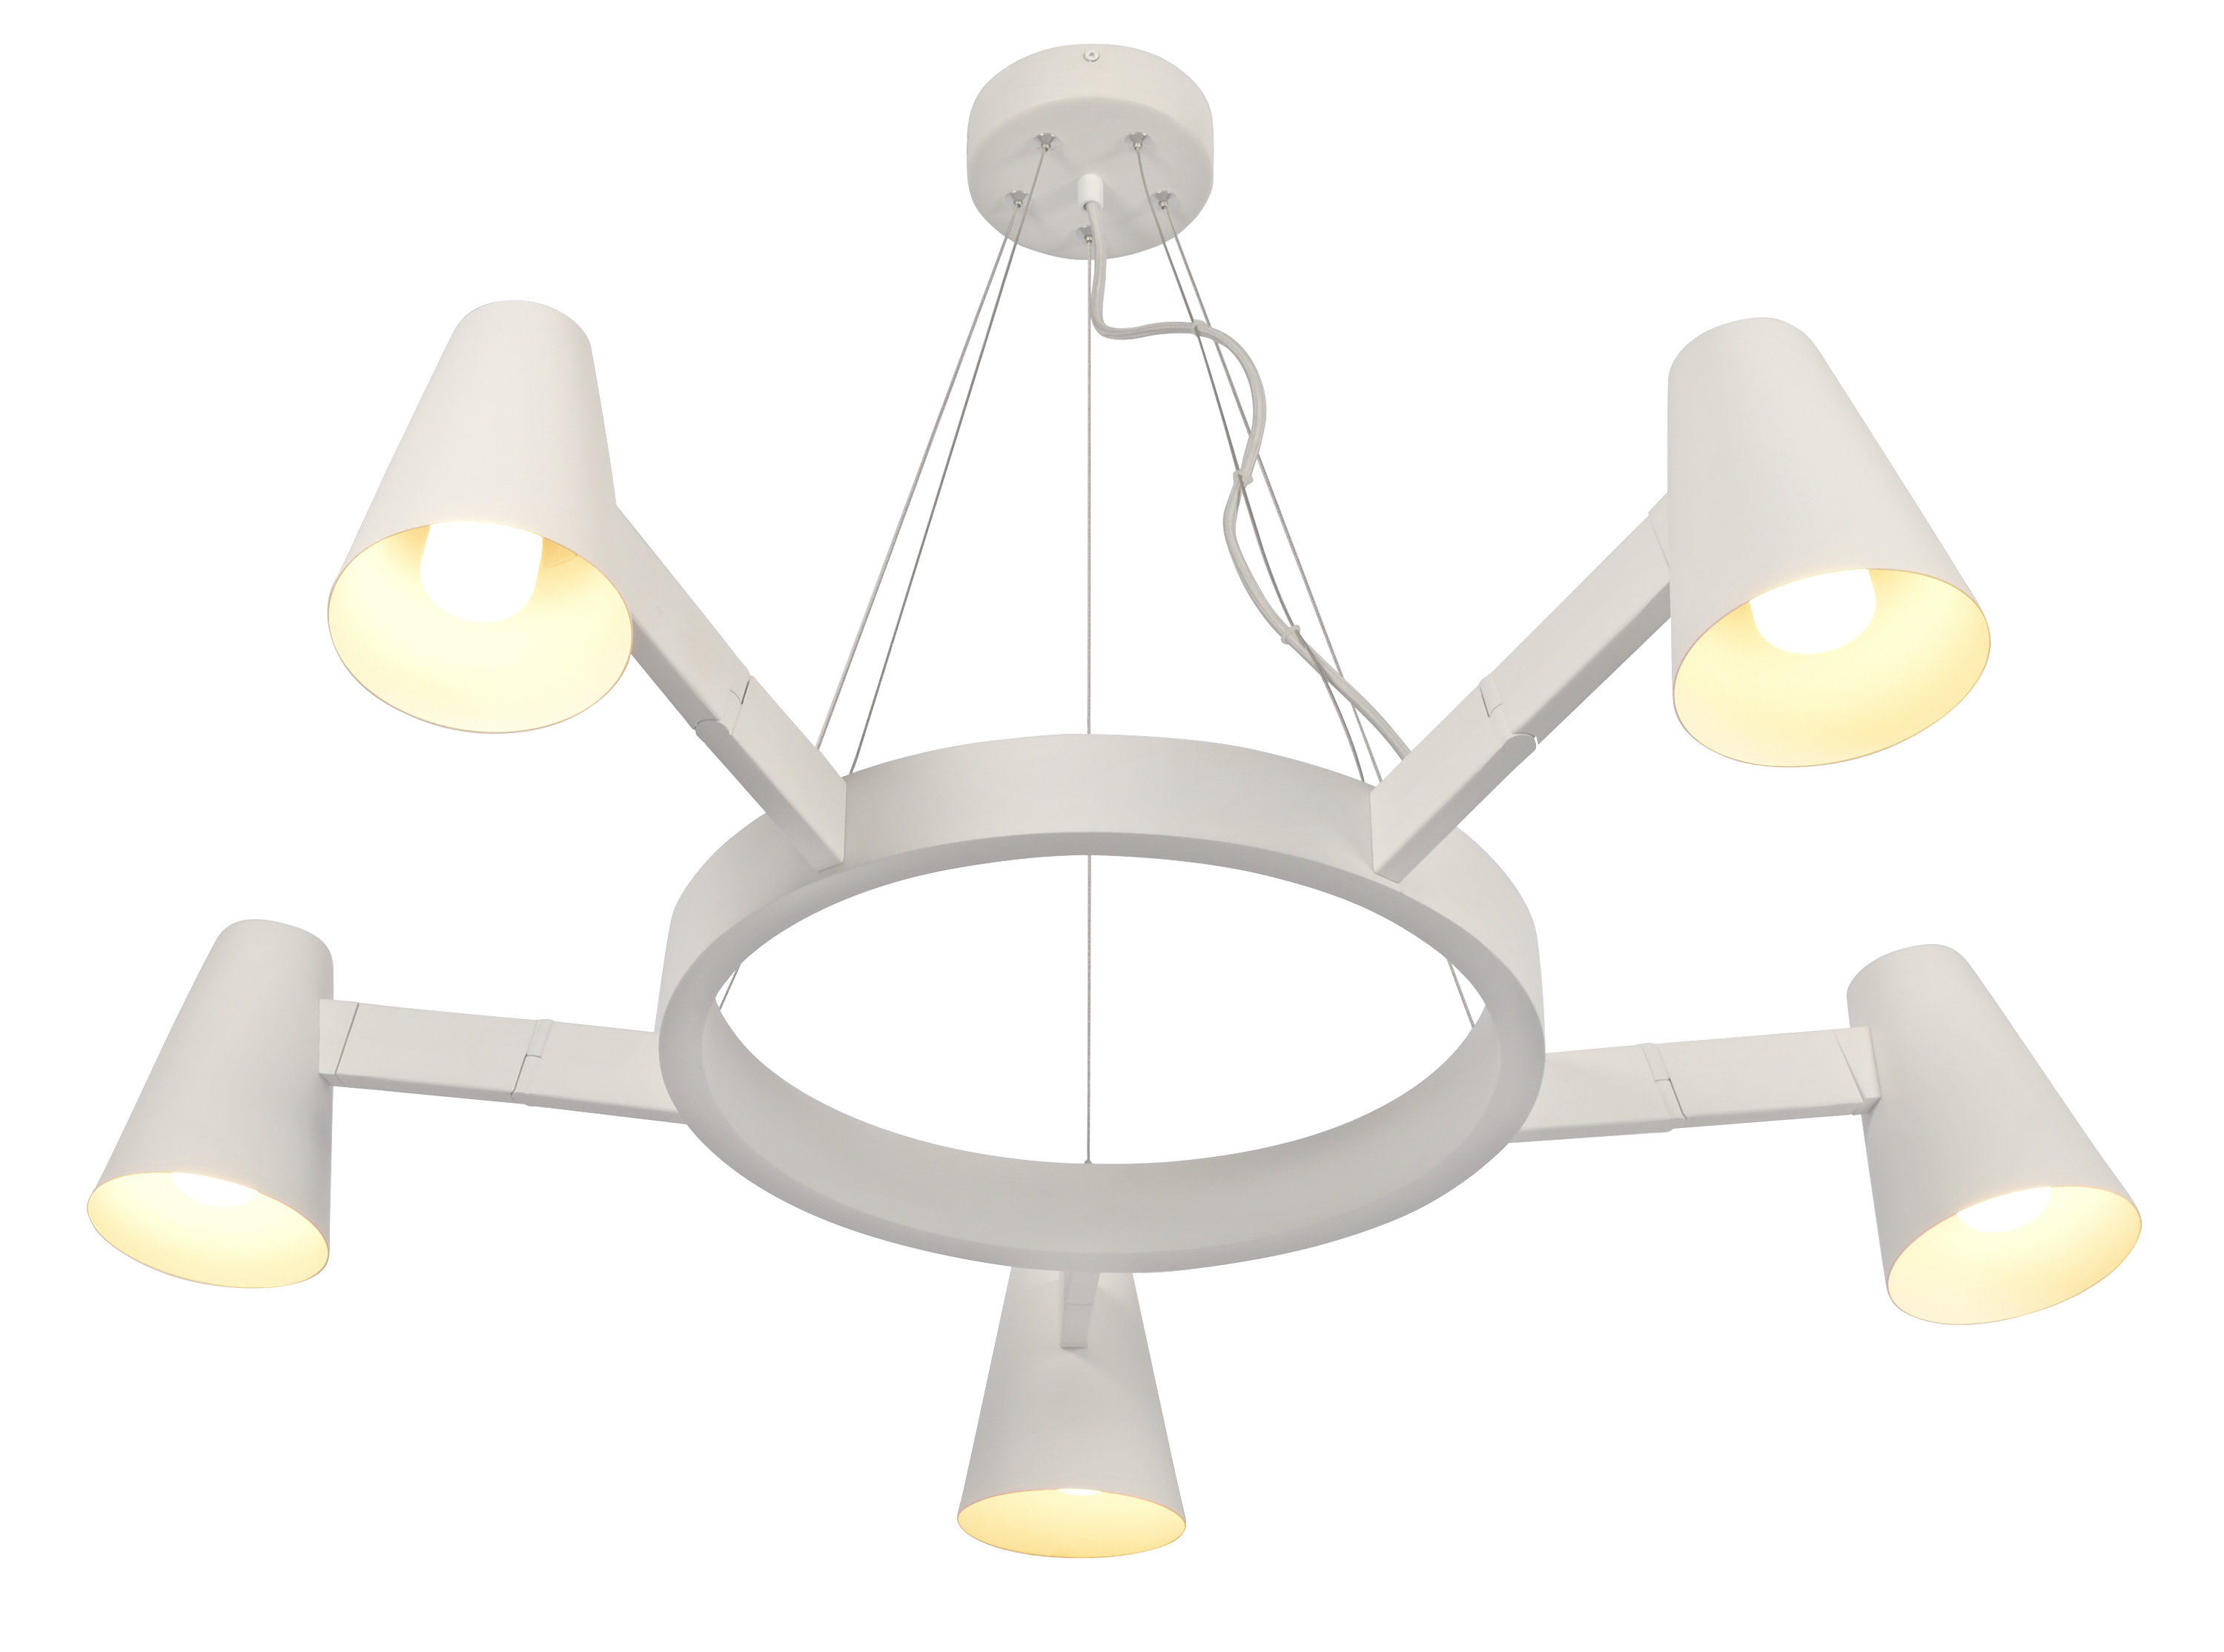 Suspension blanche 5 lampes